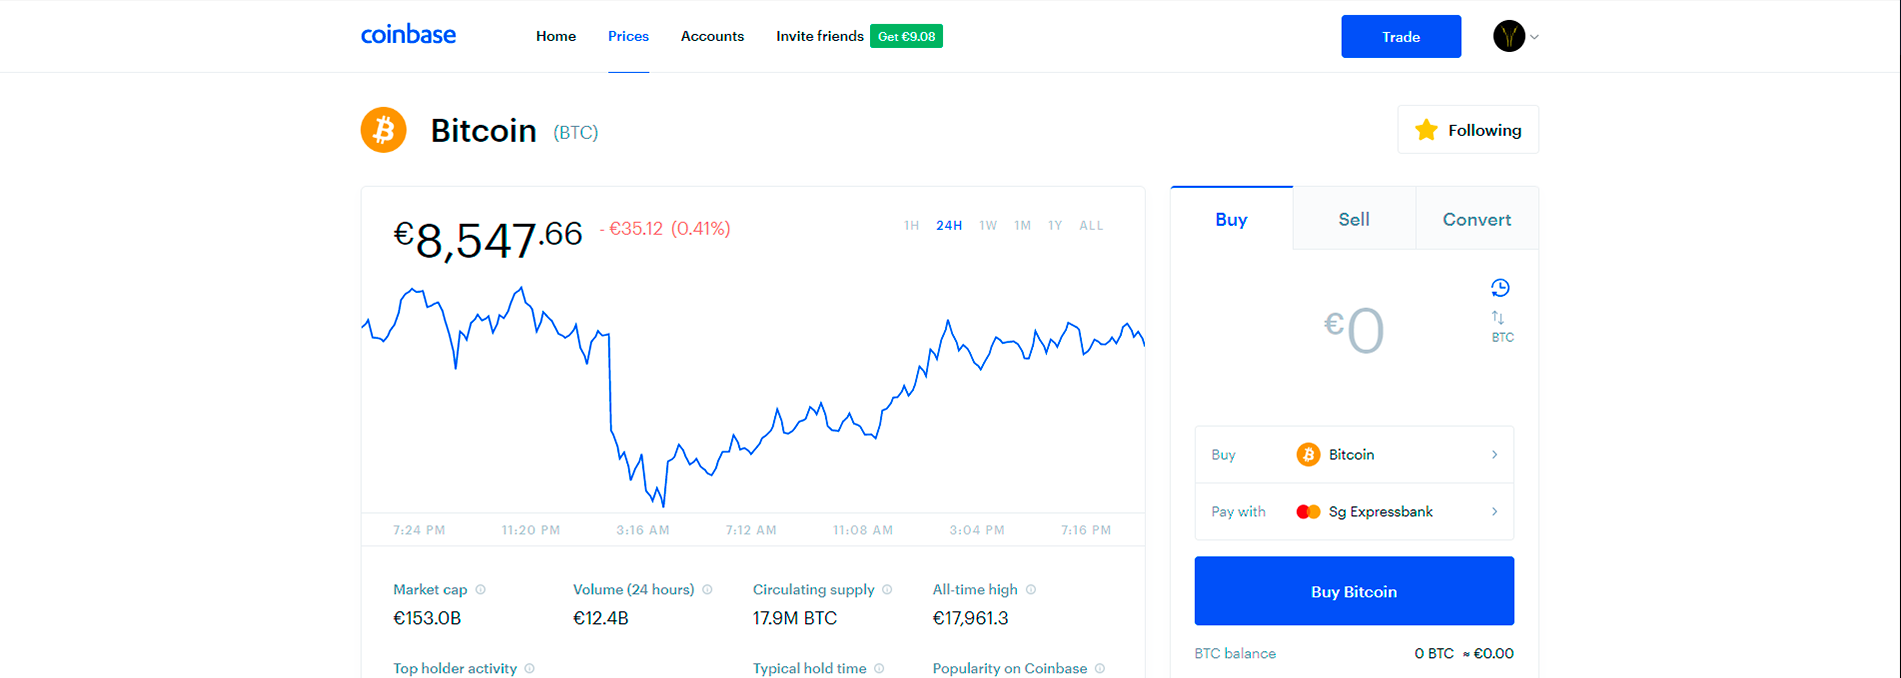 coinbase-the-most-secure-bitcoin-exchange